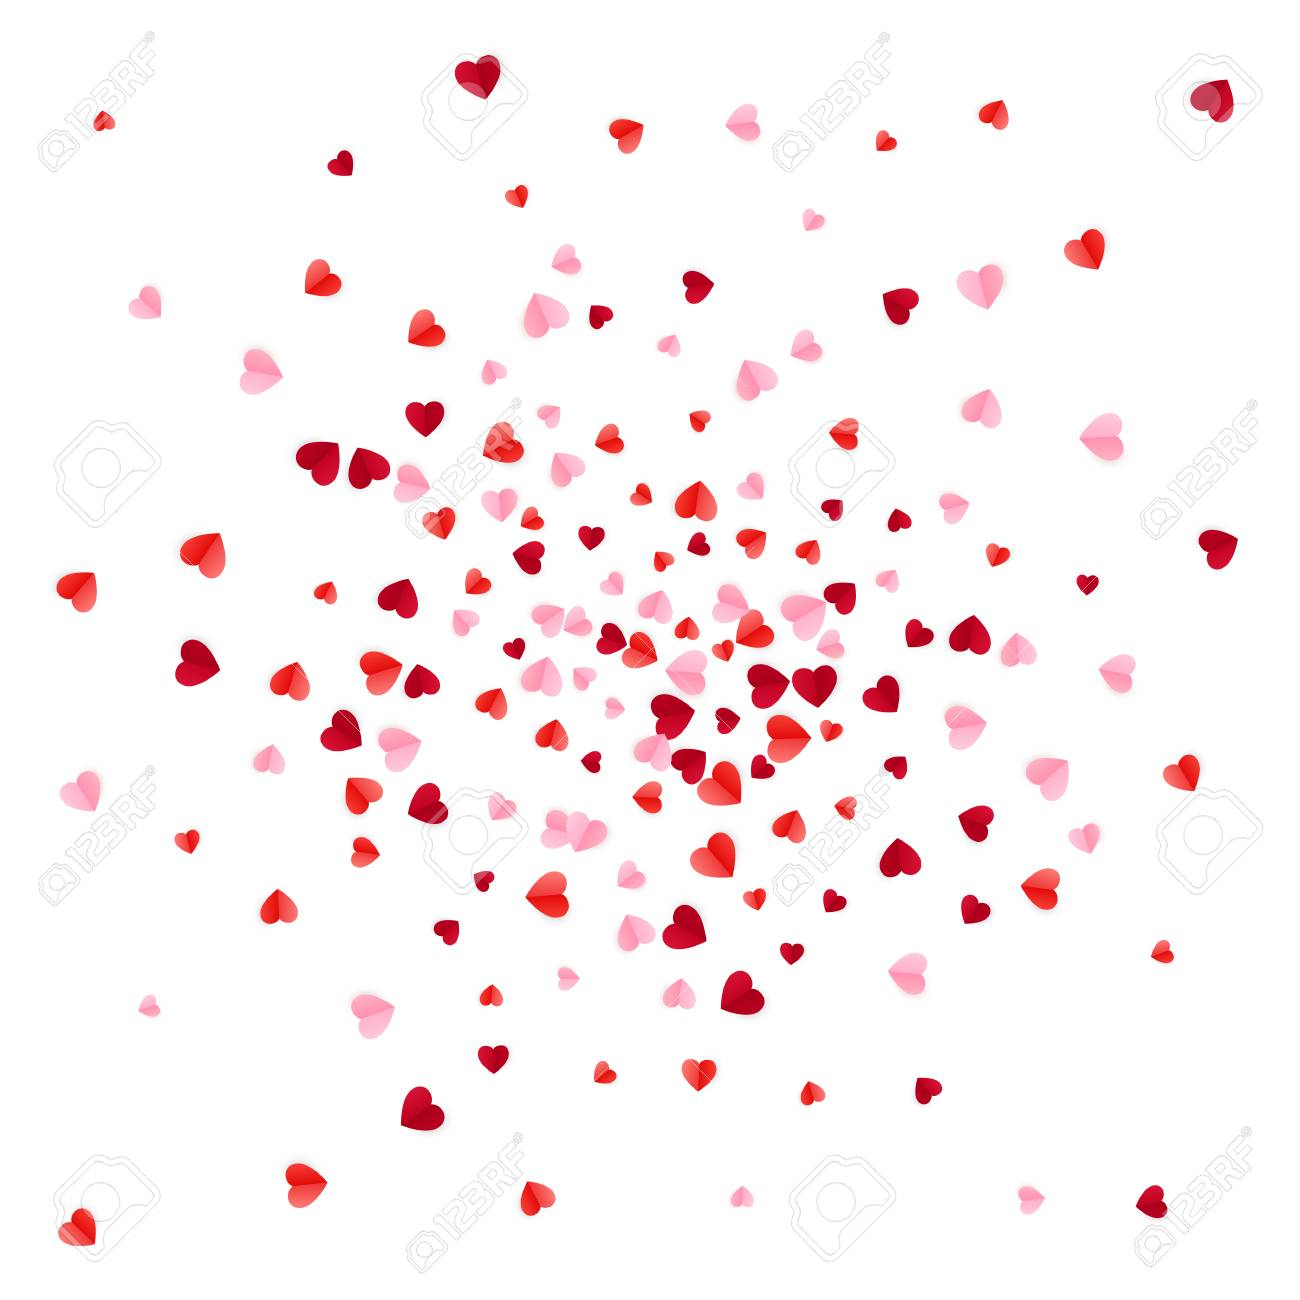 Red and pink scatter paper hearts confetti. Vector illustration isolated on white background - 126582313